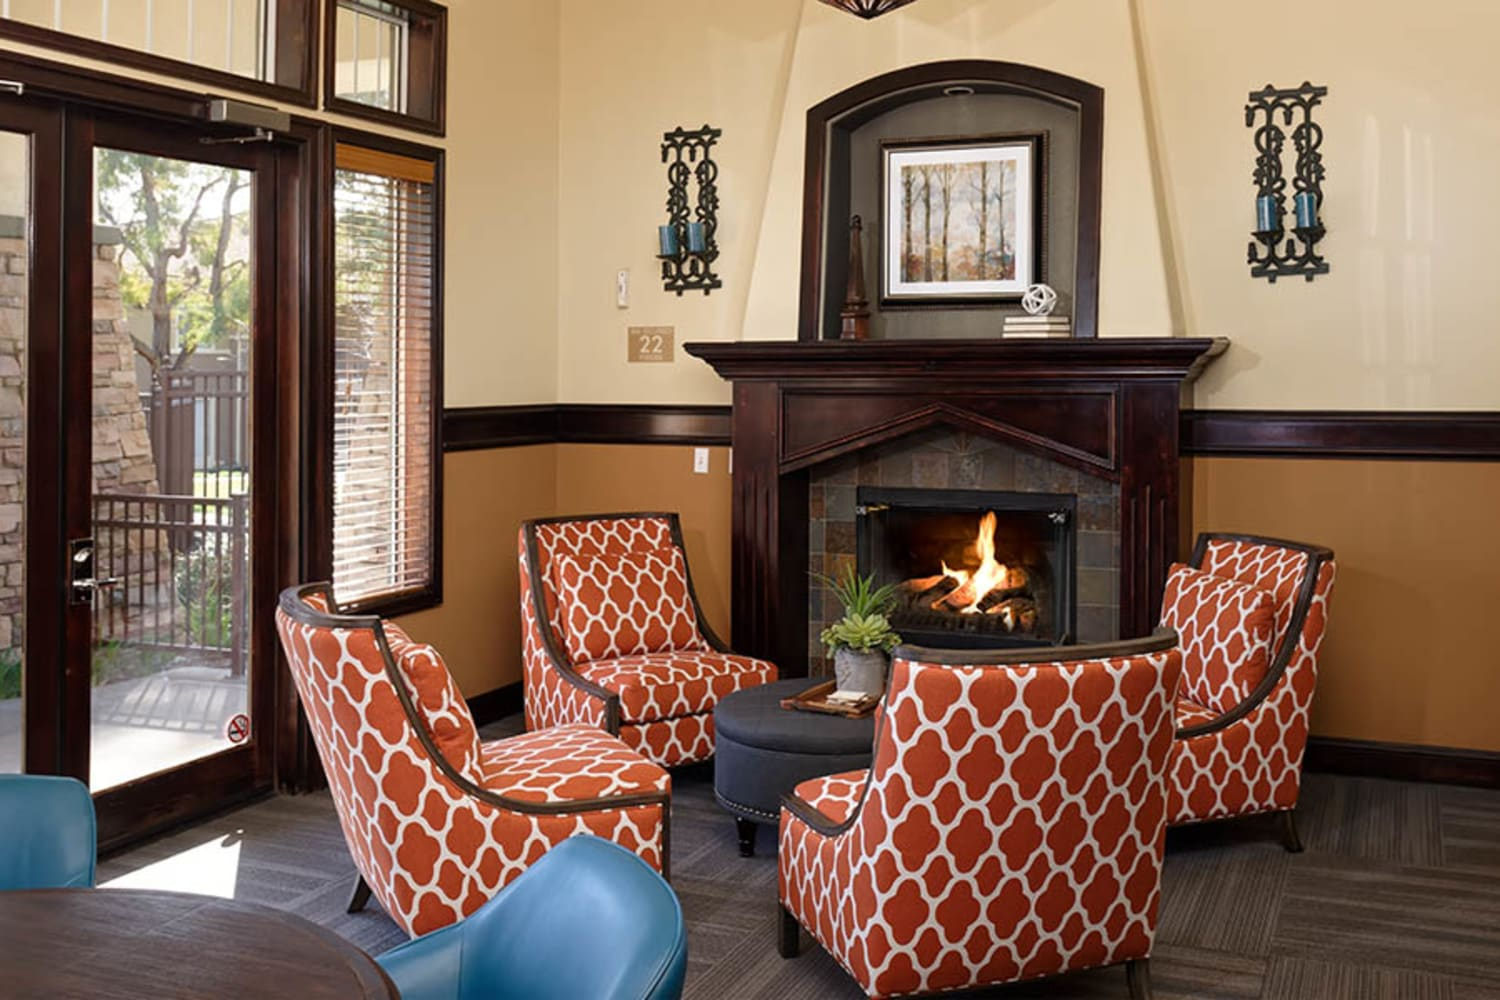 Camino Real offers a clubhouse complete with a fireplace in Rancho Cucamonga, California